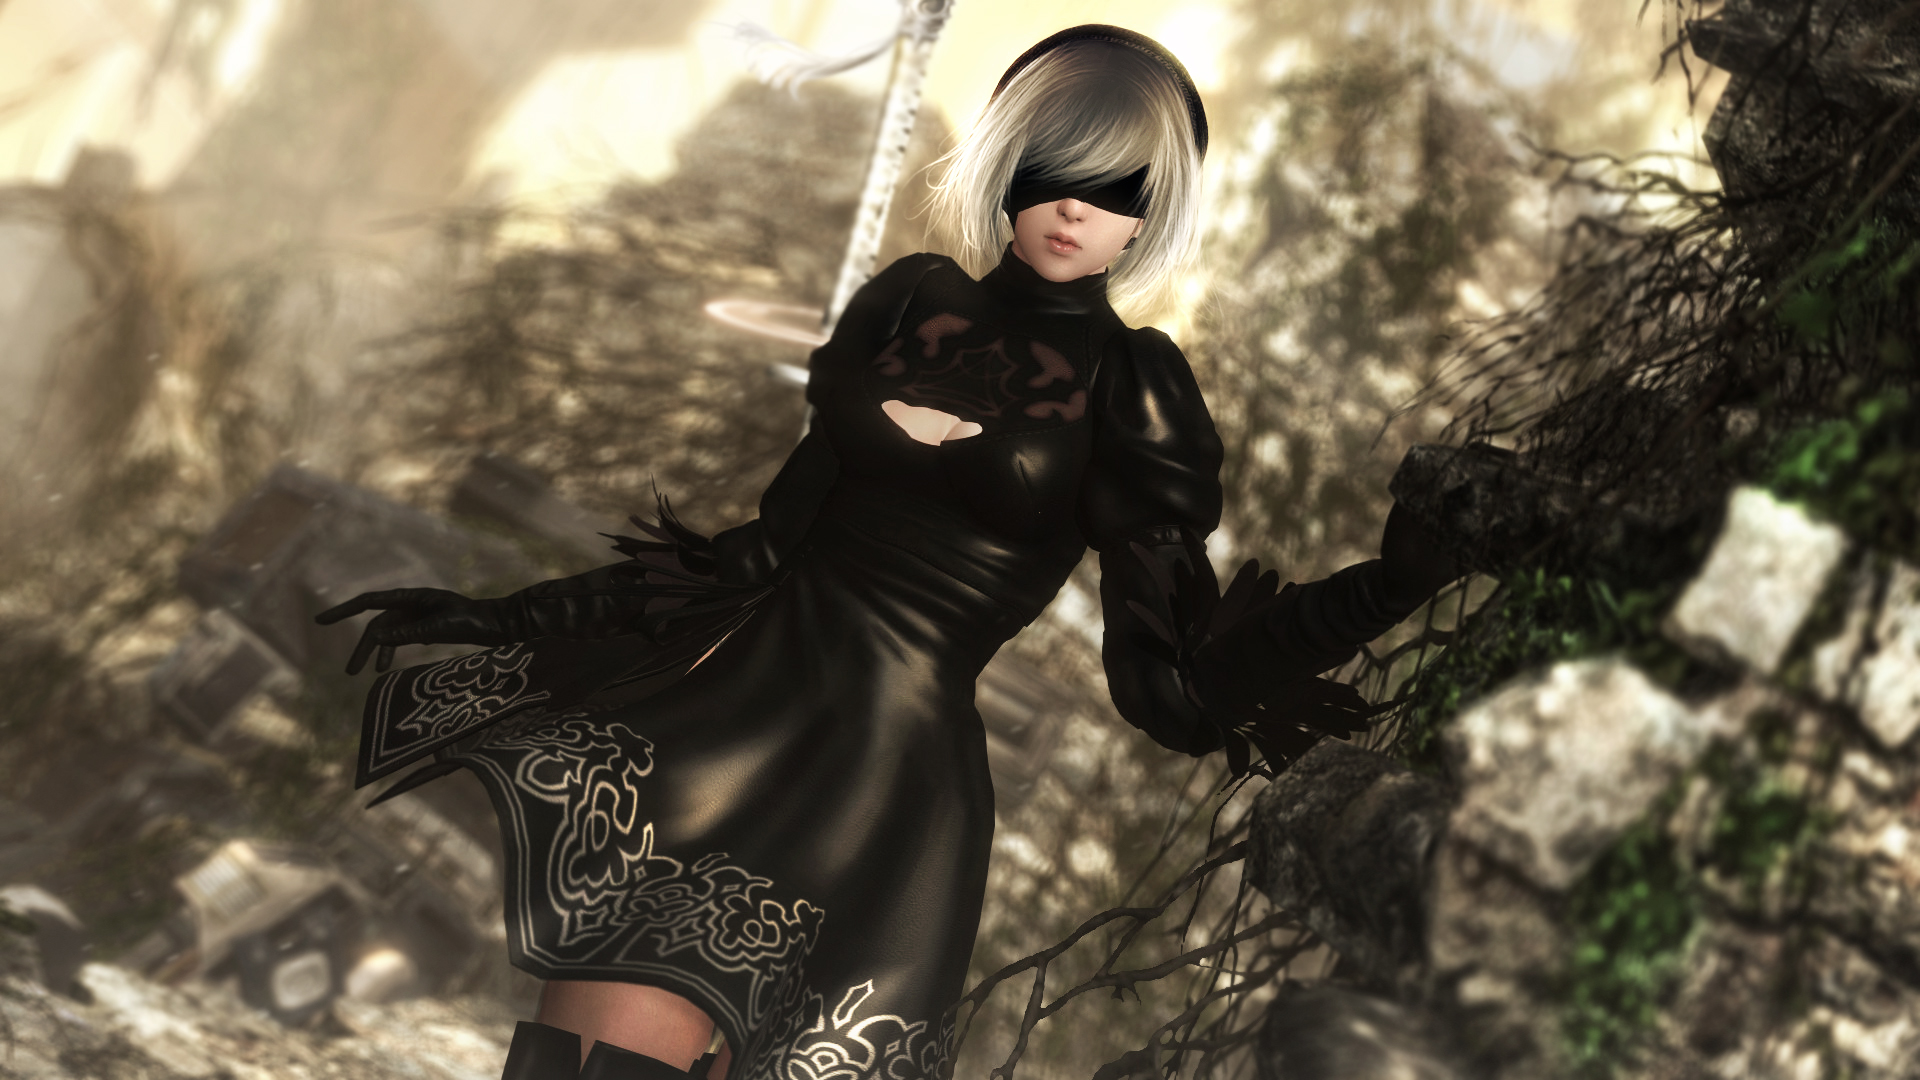 nier_by_sculp2-dazq45c.jpg